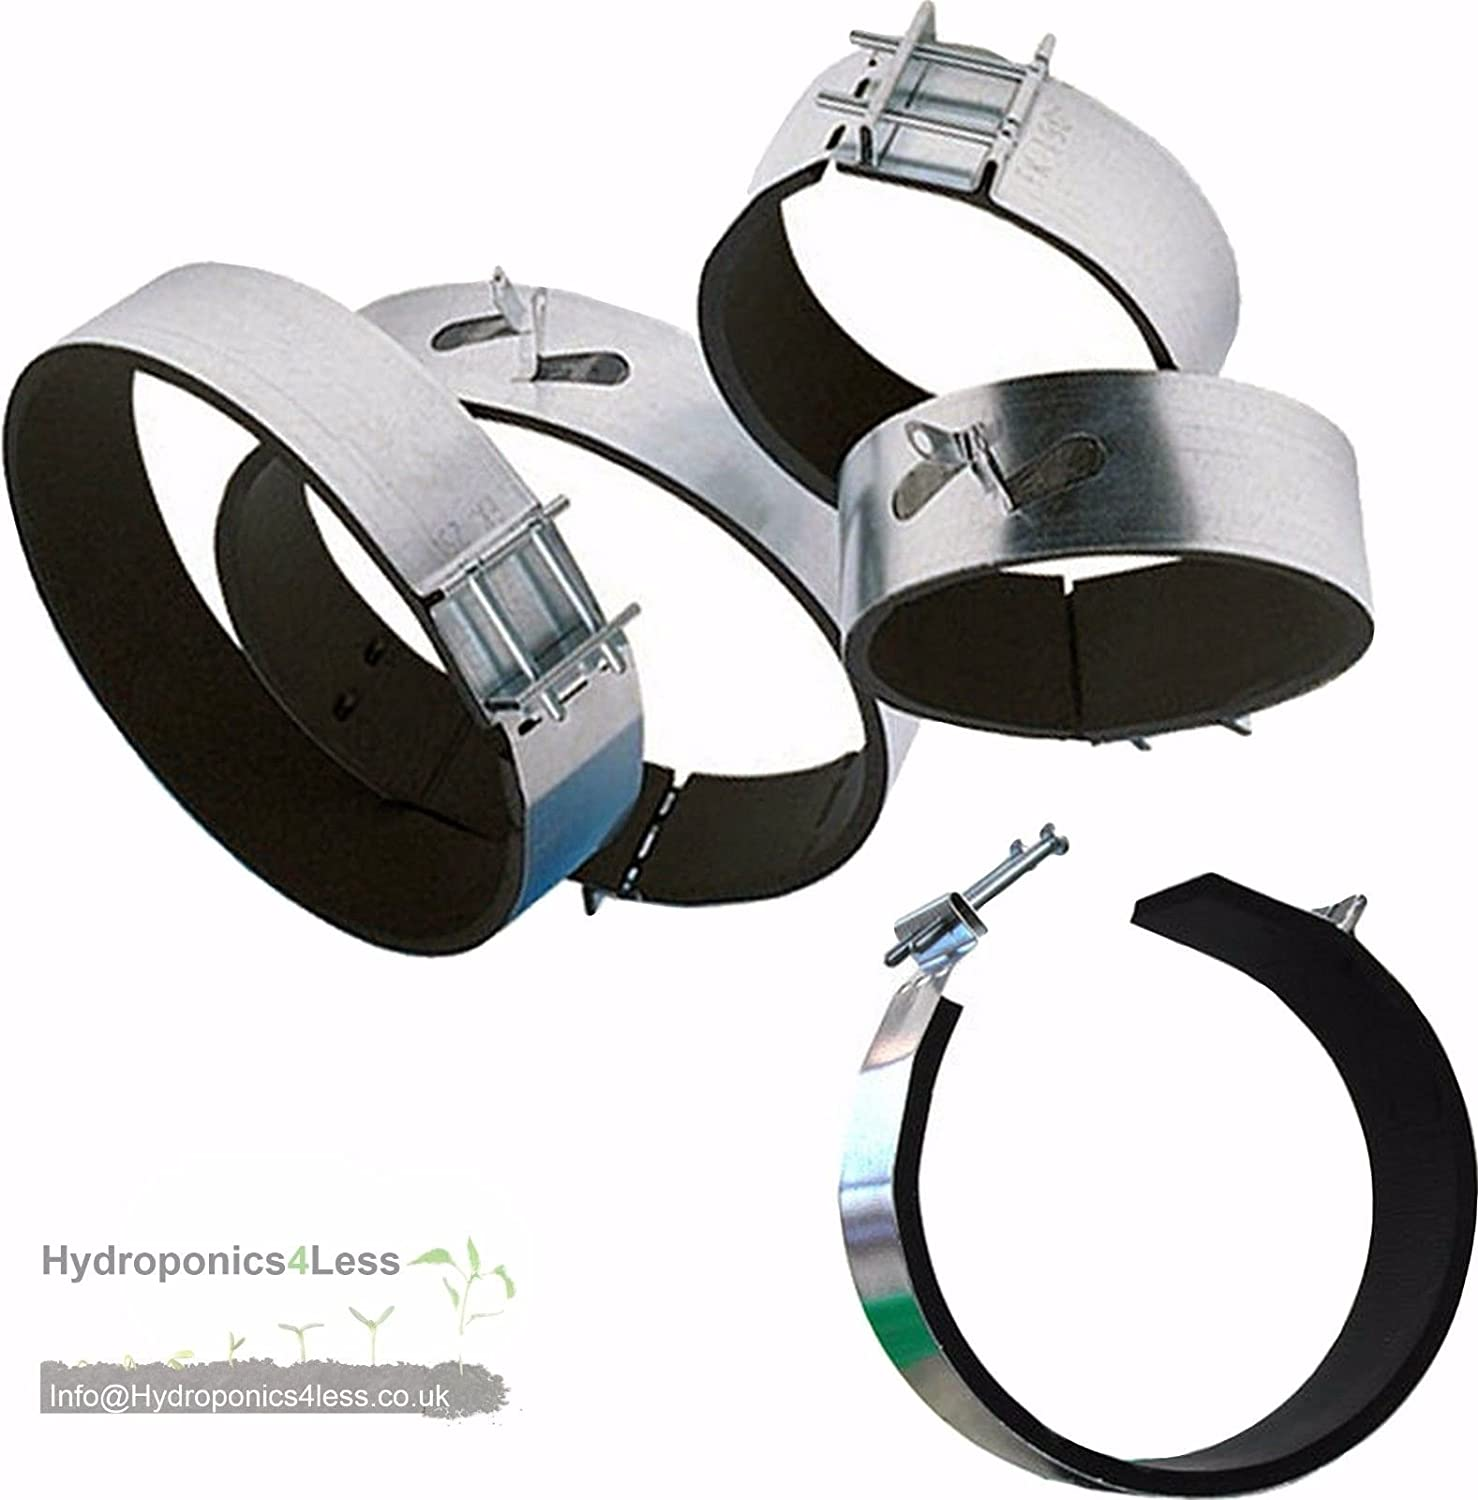 Ducting Hydroponic Fan Carbon Filter Padded Fast Clamp 4 5 6 8 10 & 12 Inch (4